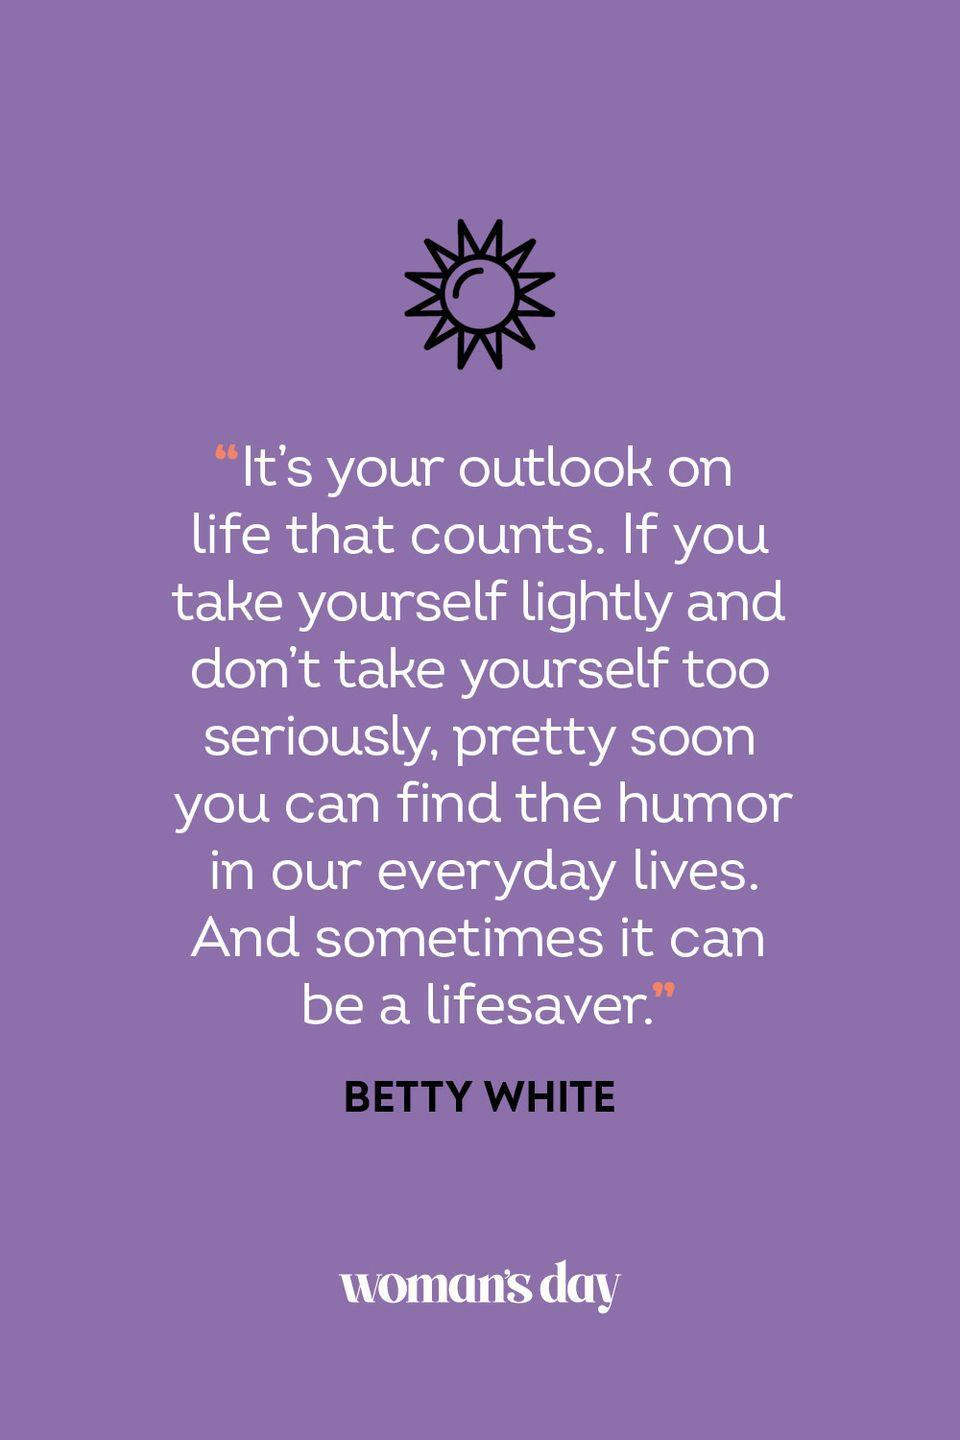 <p>It's your outlook on life that counts. If you take yourself lightly and don't take yourself too seriously, pretty soon you can find the humor in our everyday lives. And sometimes it can be a lifesaver.</p>